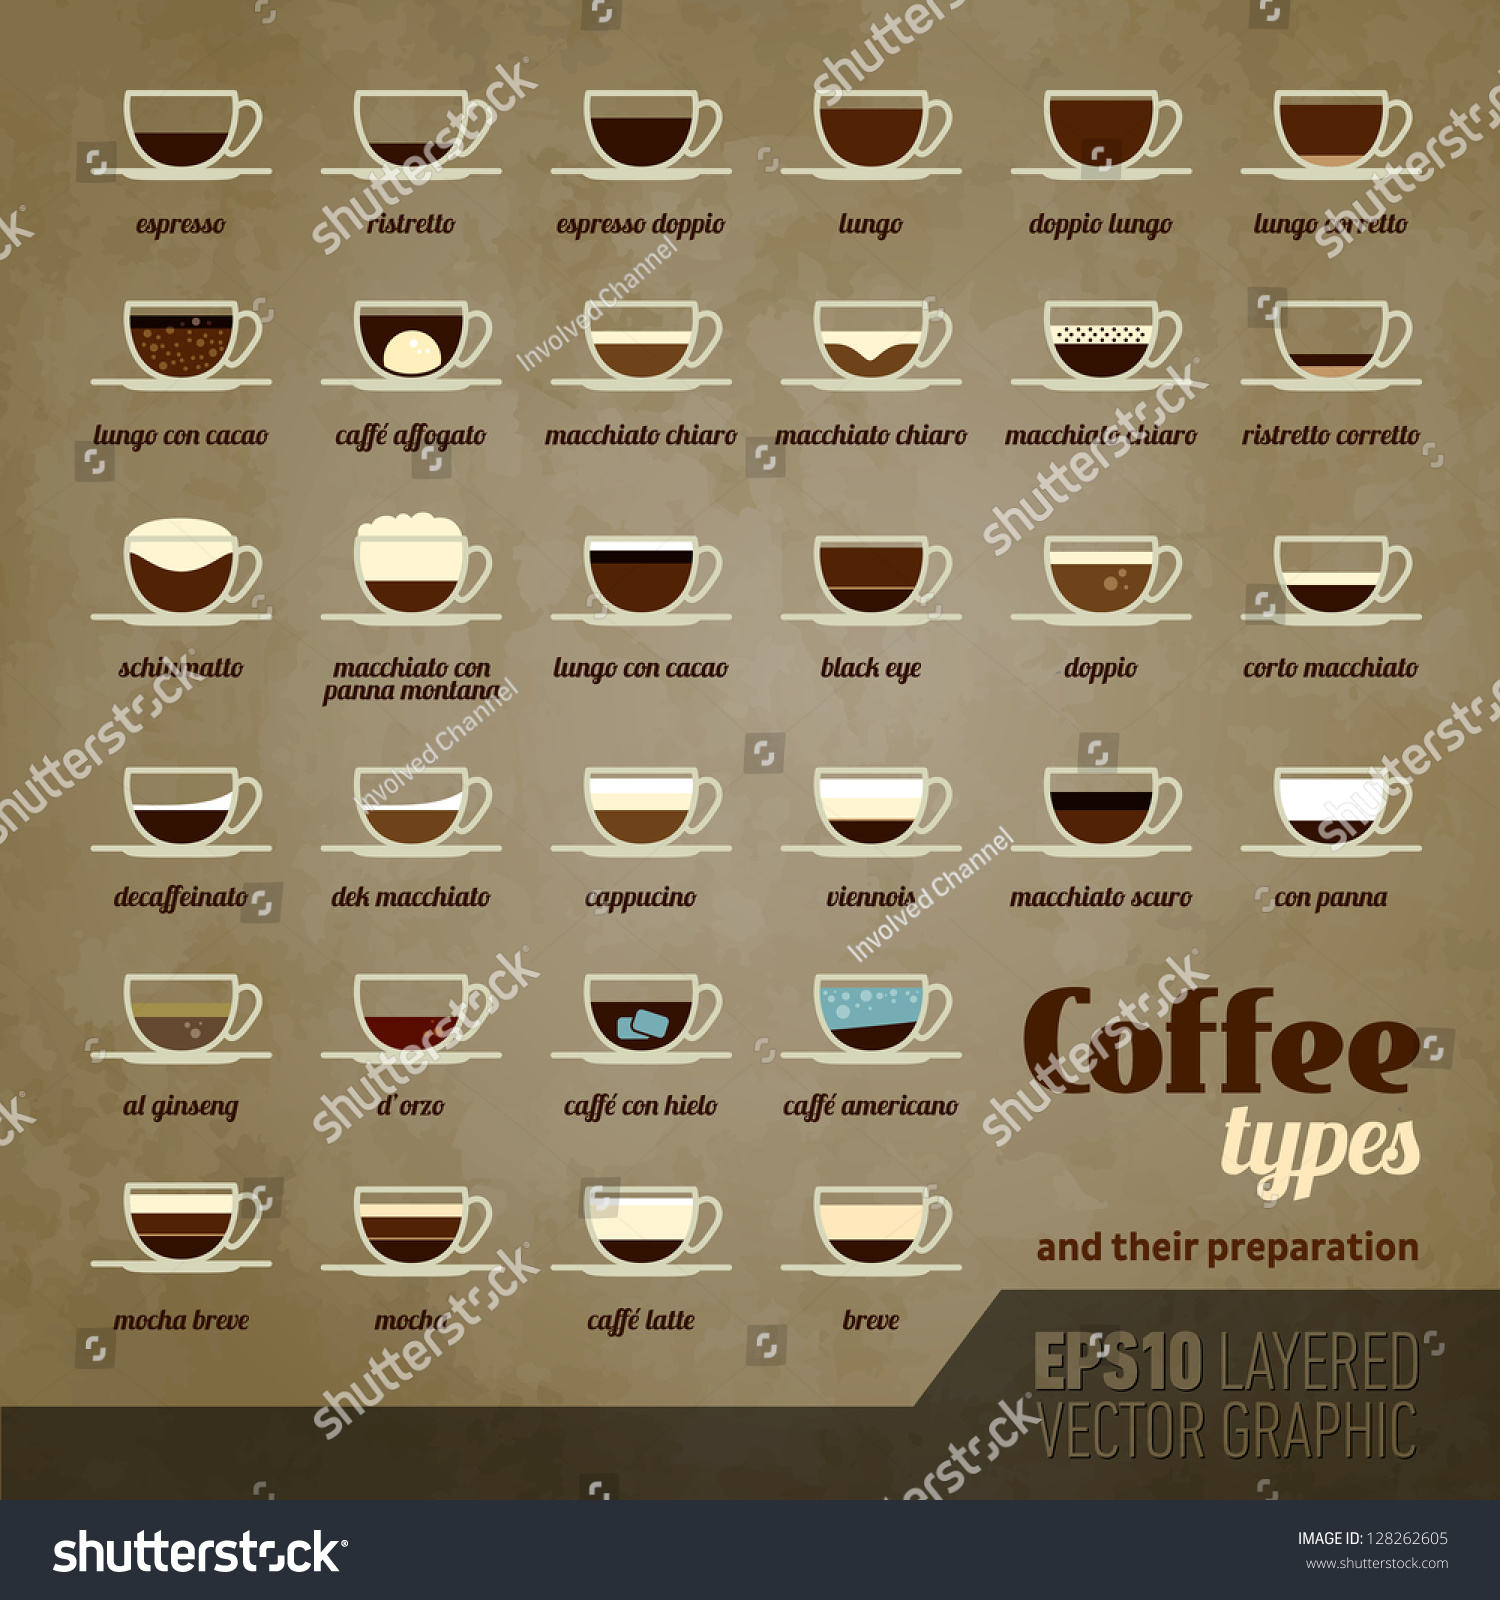 Coffee menu icon set. Beverages types and preparation: ristretto ...